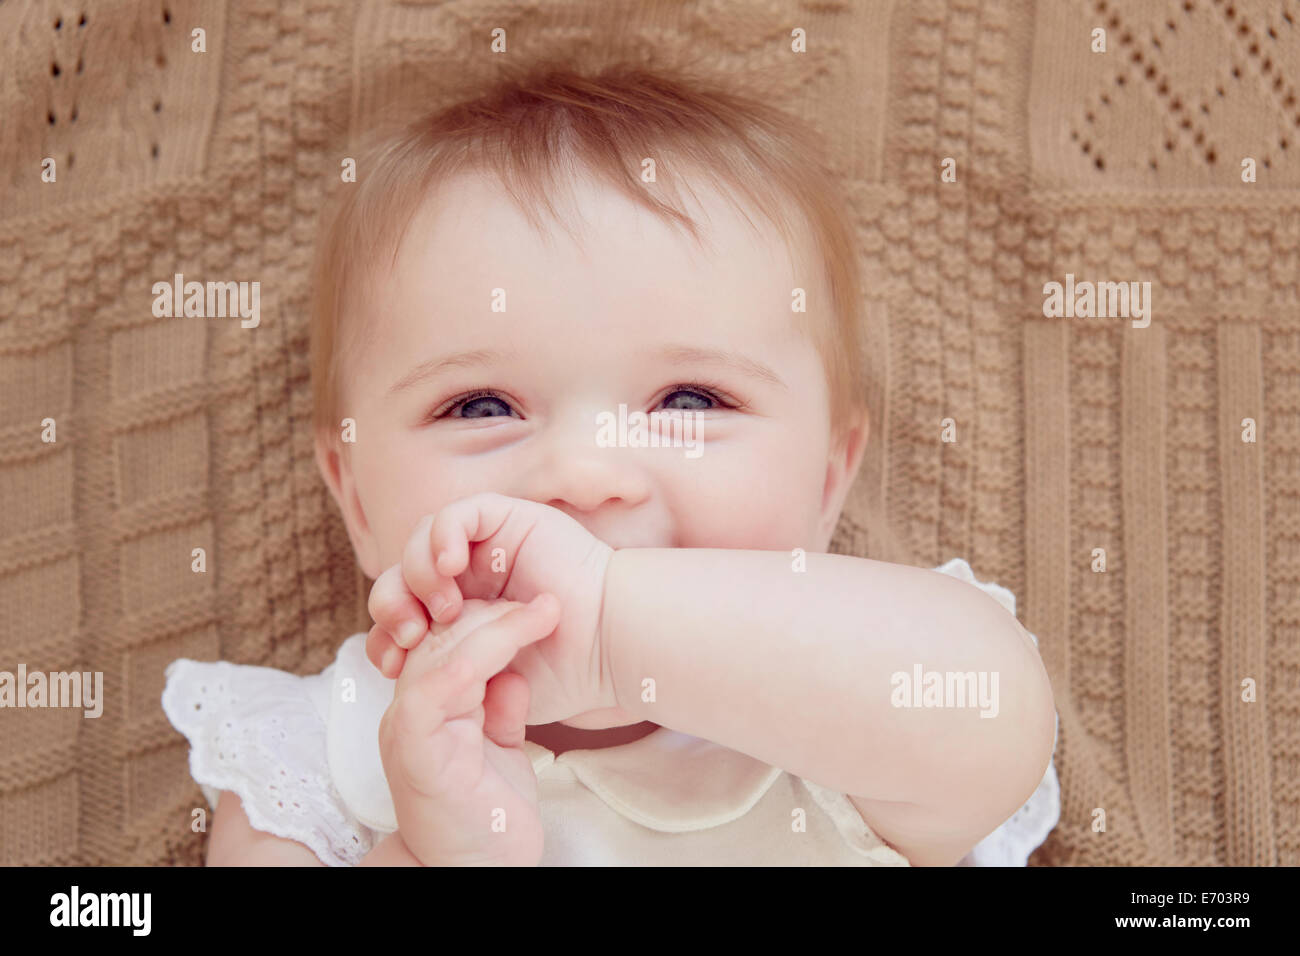 Close up portrait of smiling baby girl lying on blanket - Stock Image